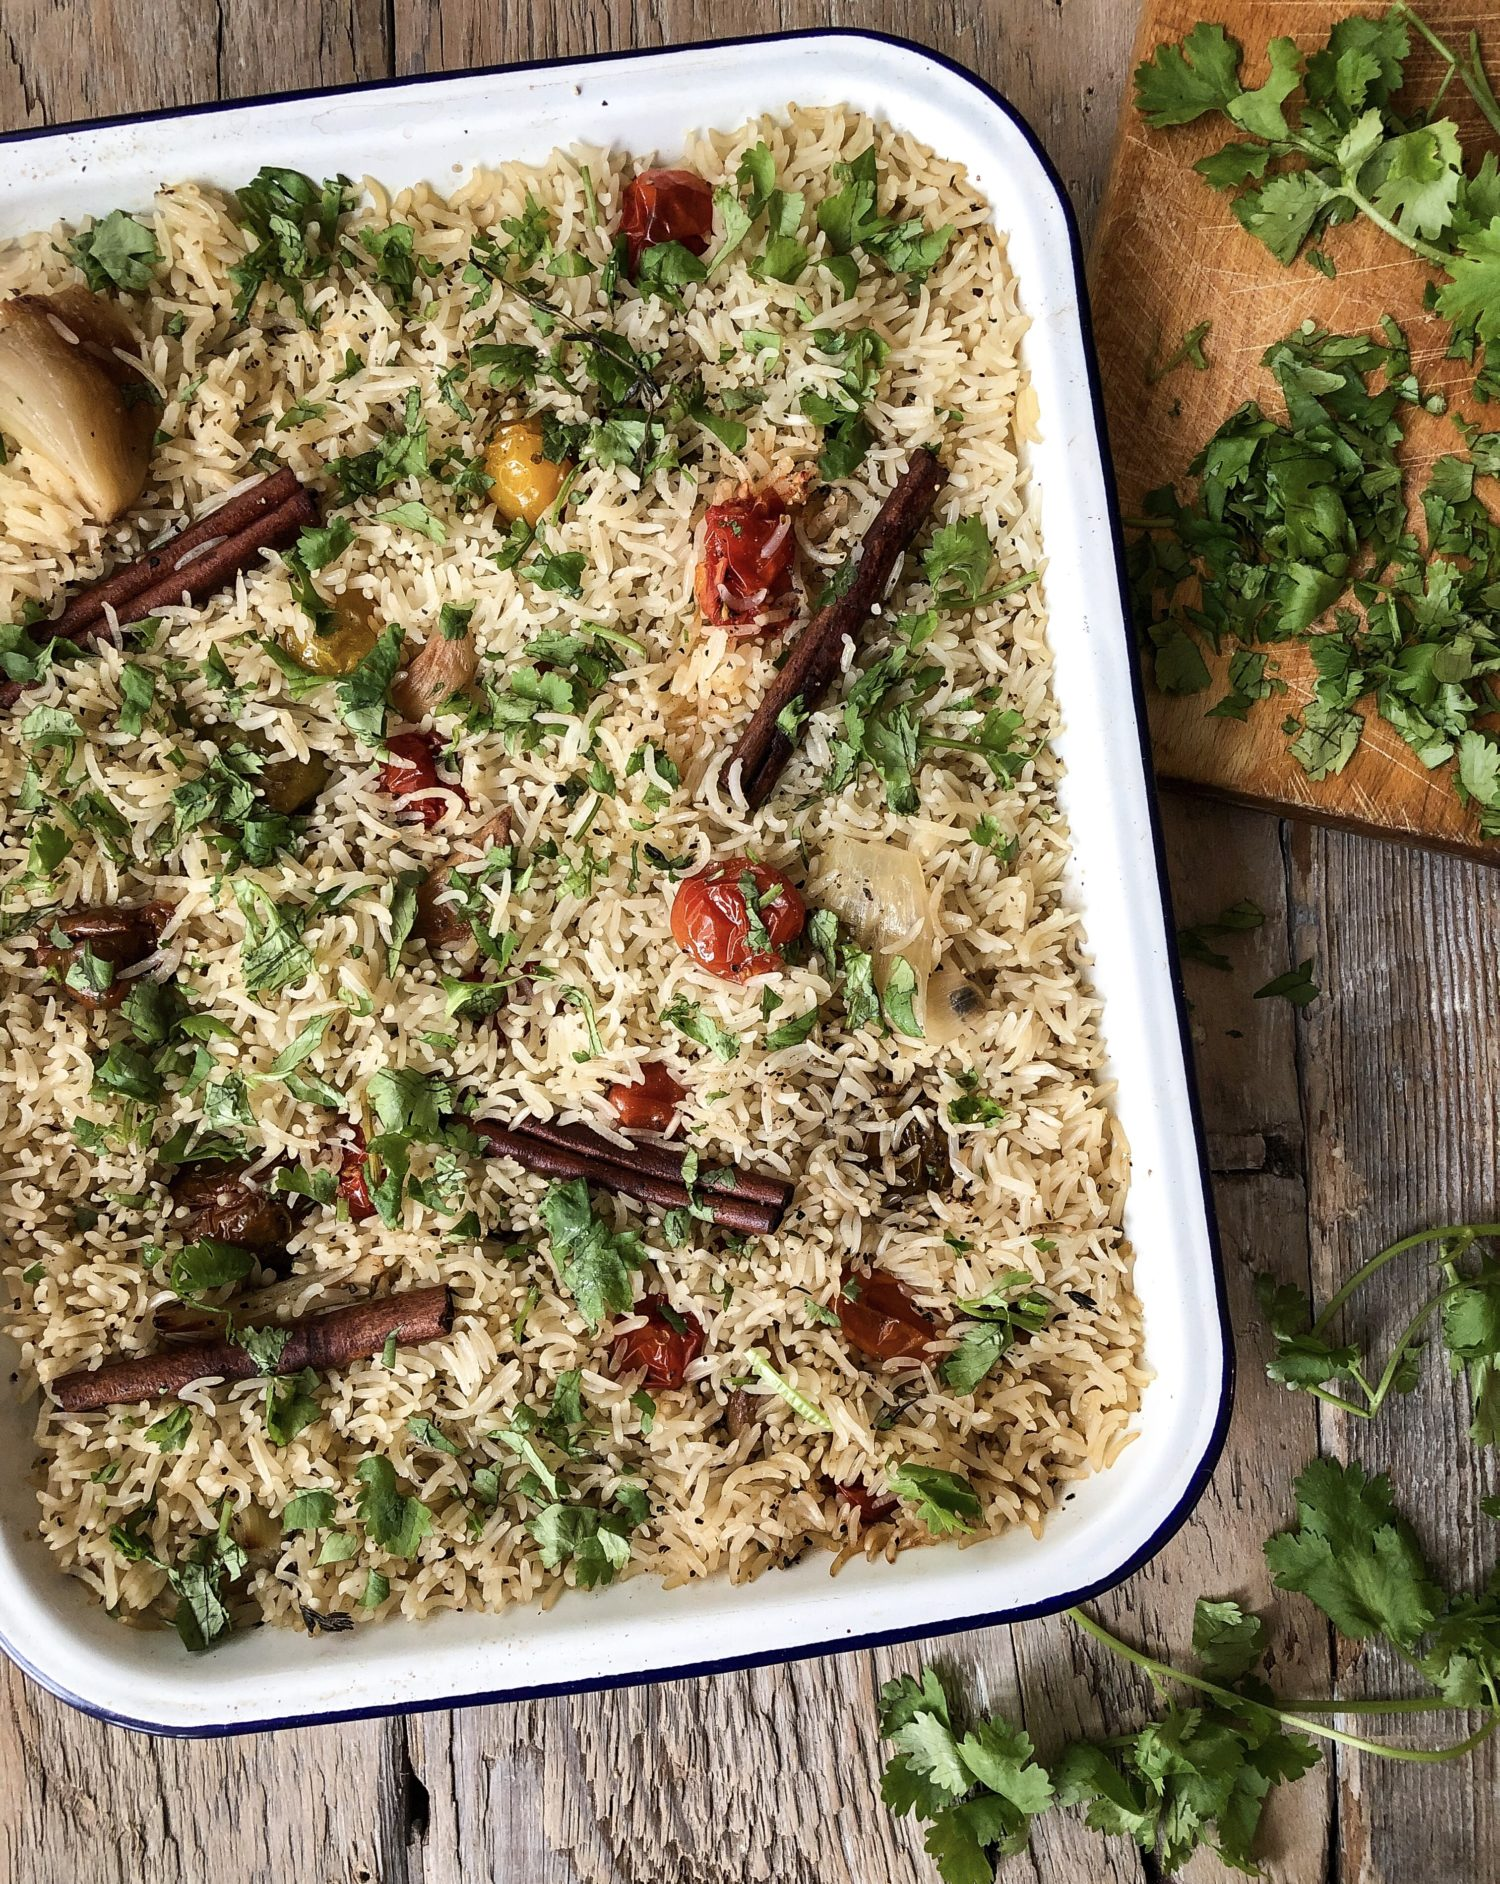 Baked Rice with Tomato and garlic confit